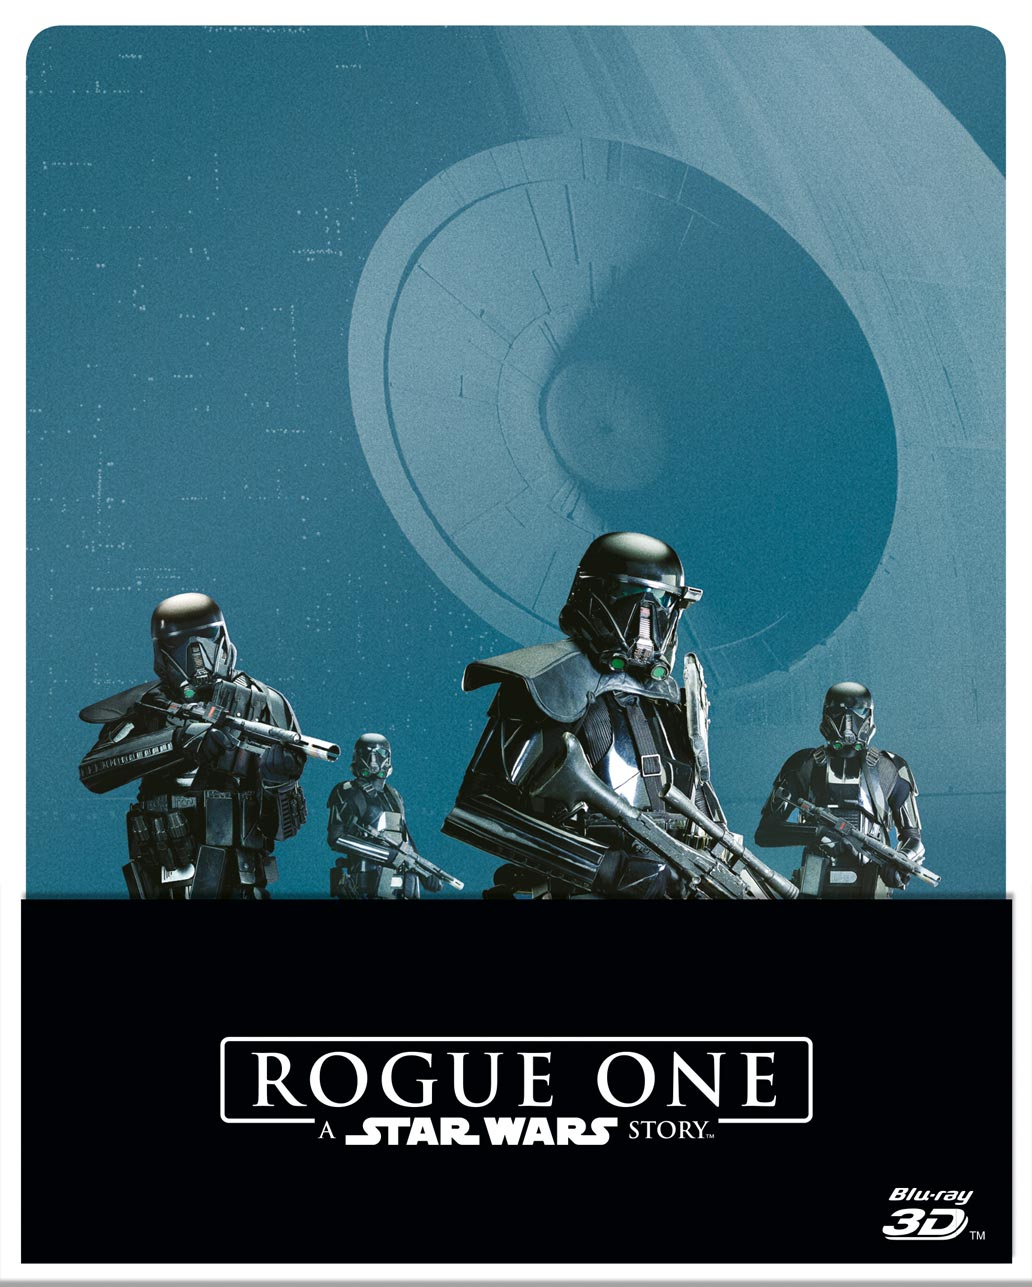 Star Wars - Rogue One (2016) (3D) (edizione limitata steelbook)